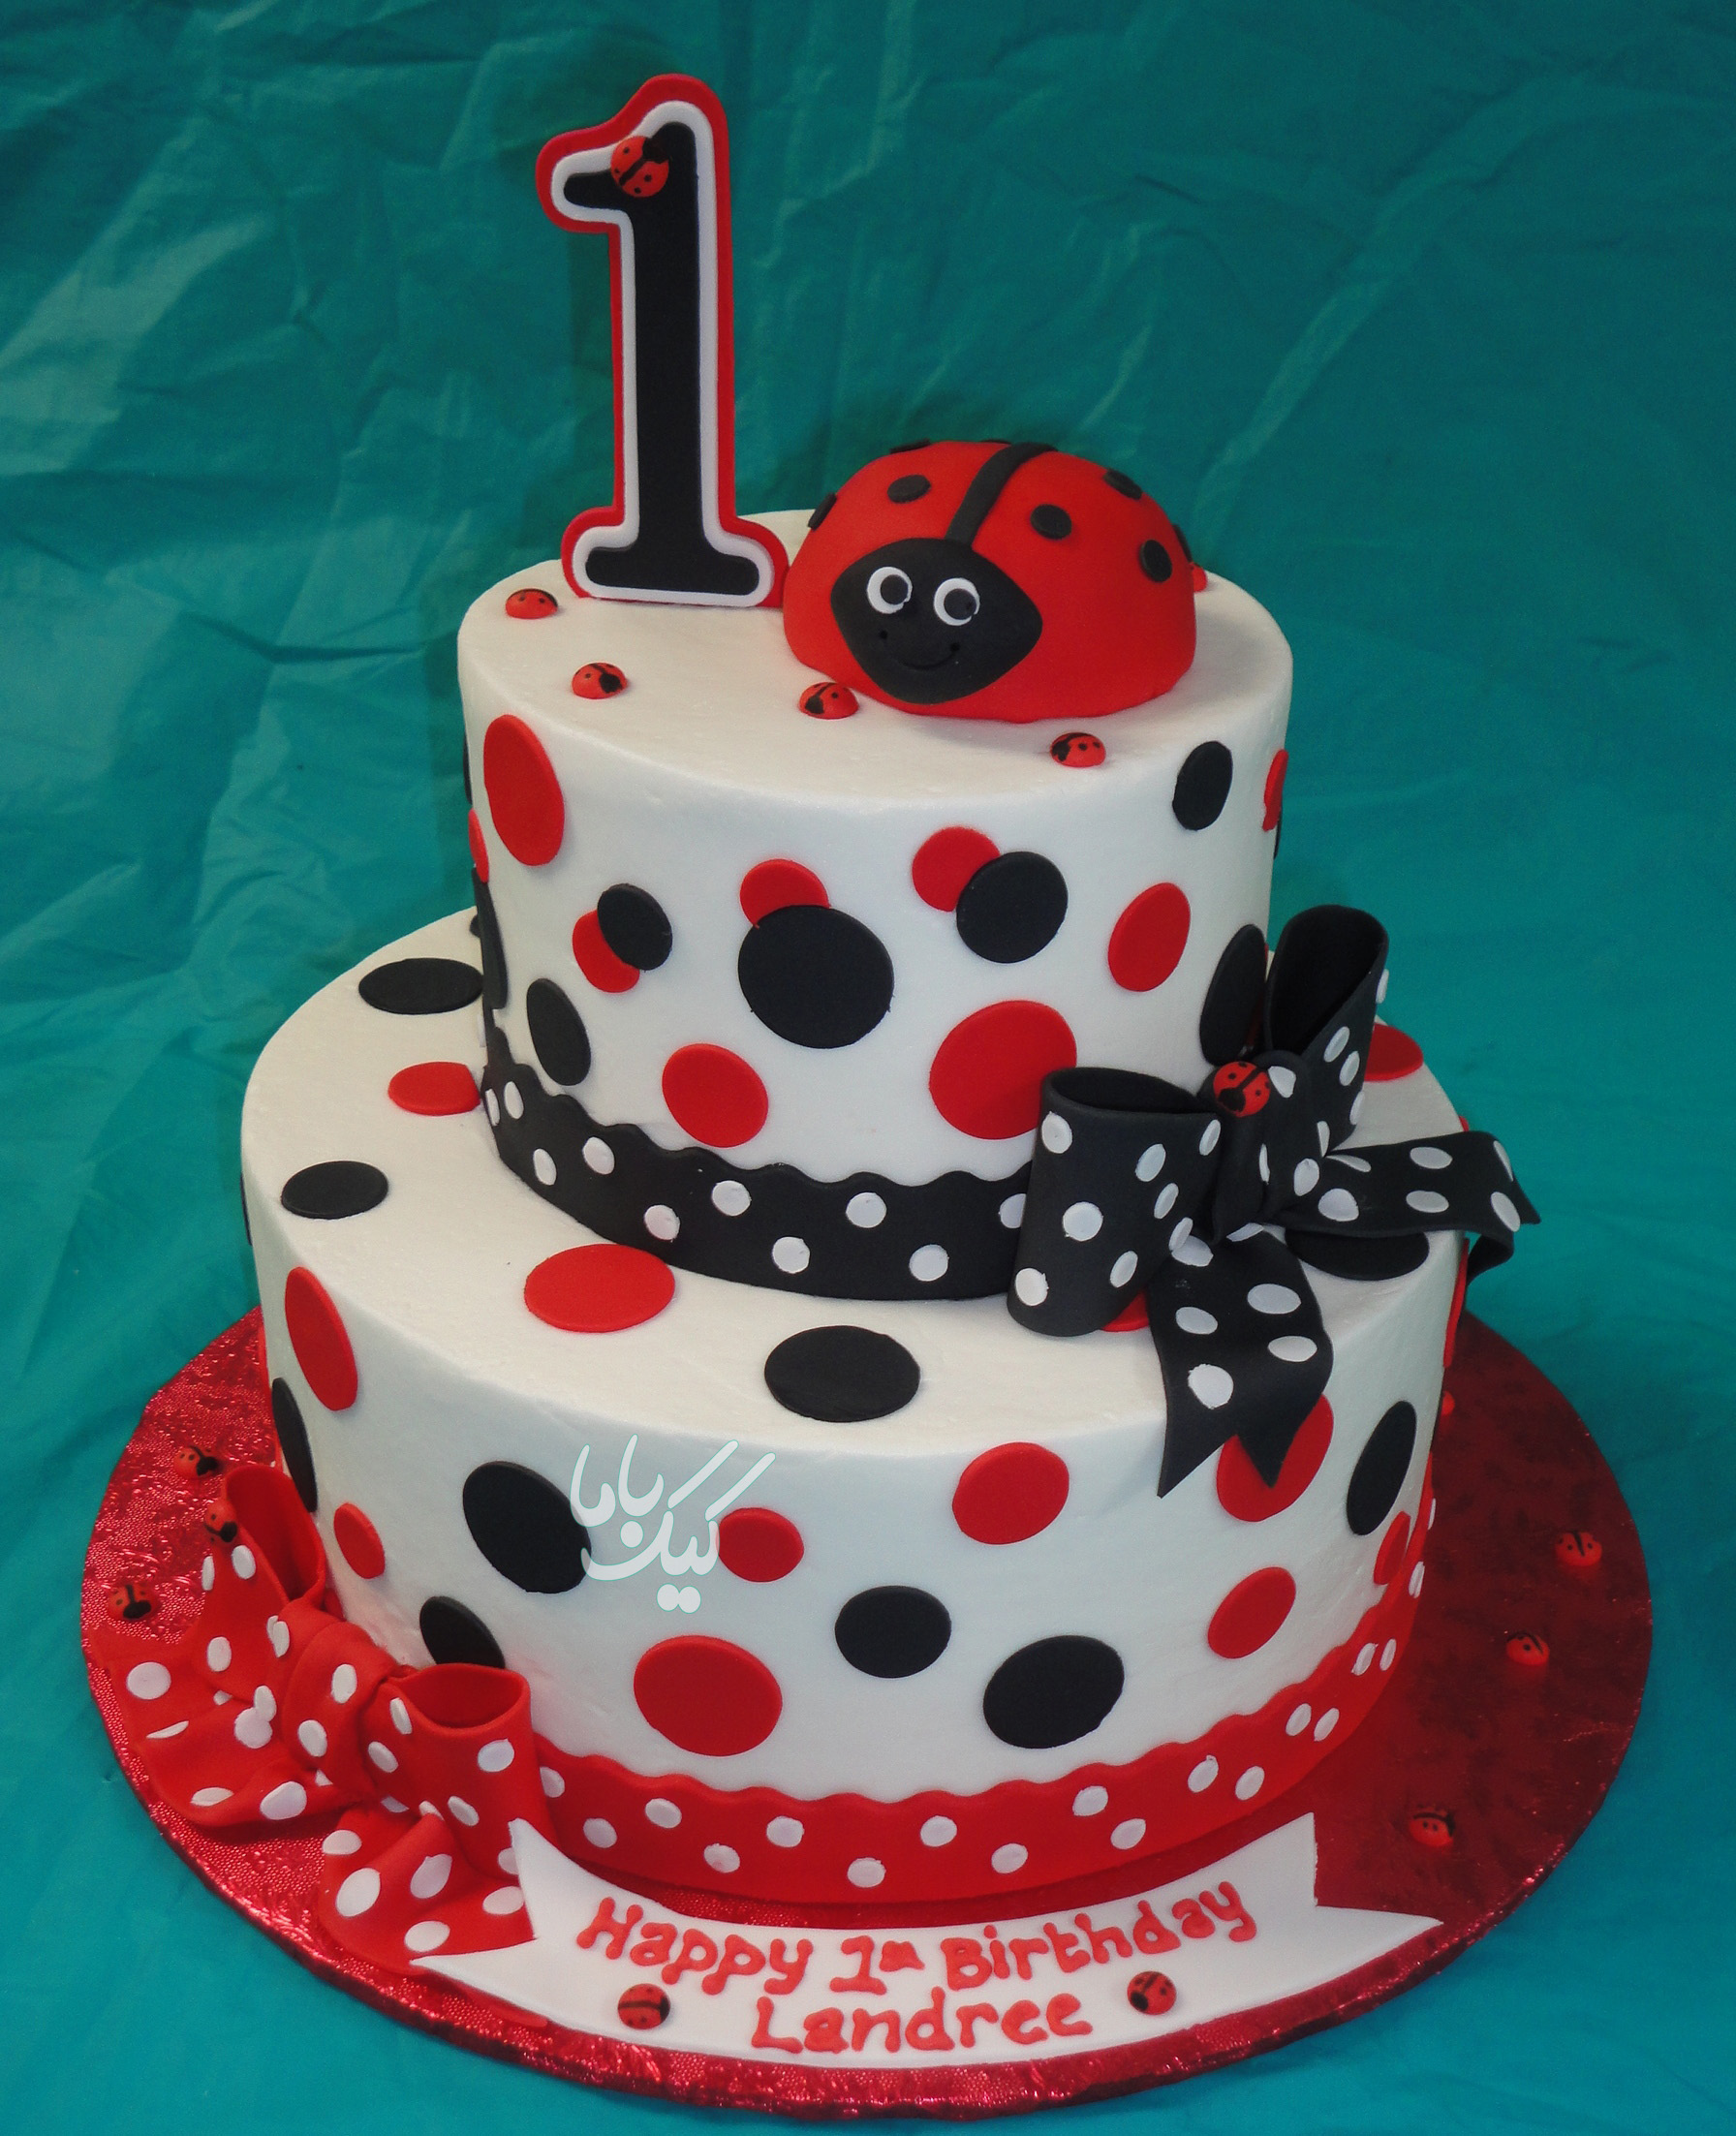 fondant-ladybug-birthday-cake-for-baby-girls-www.cakebama.com